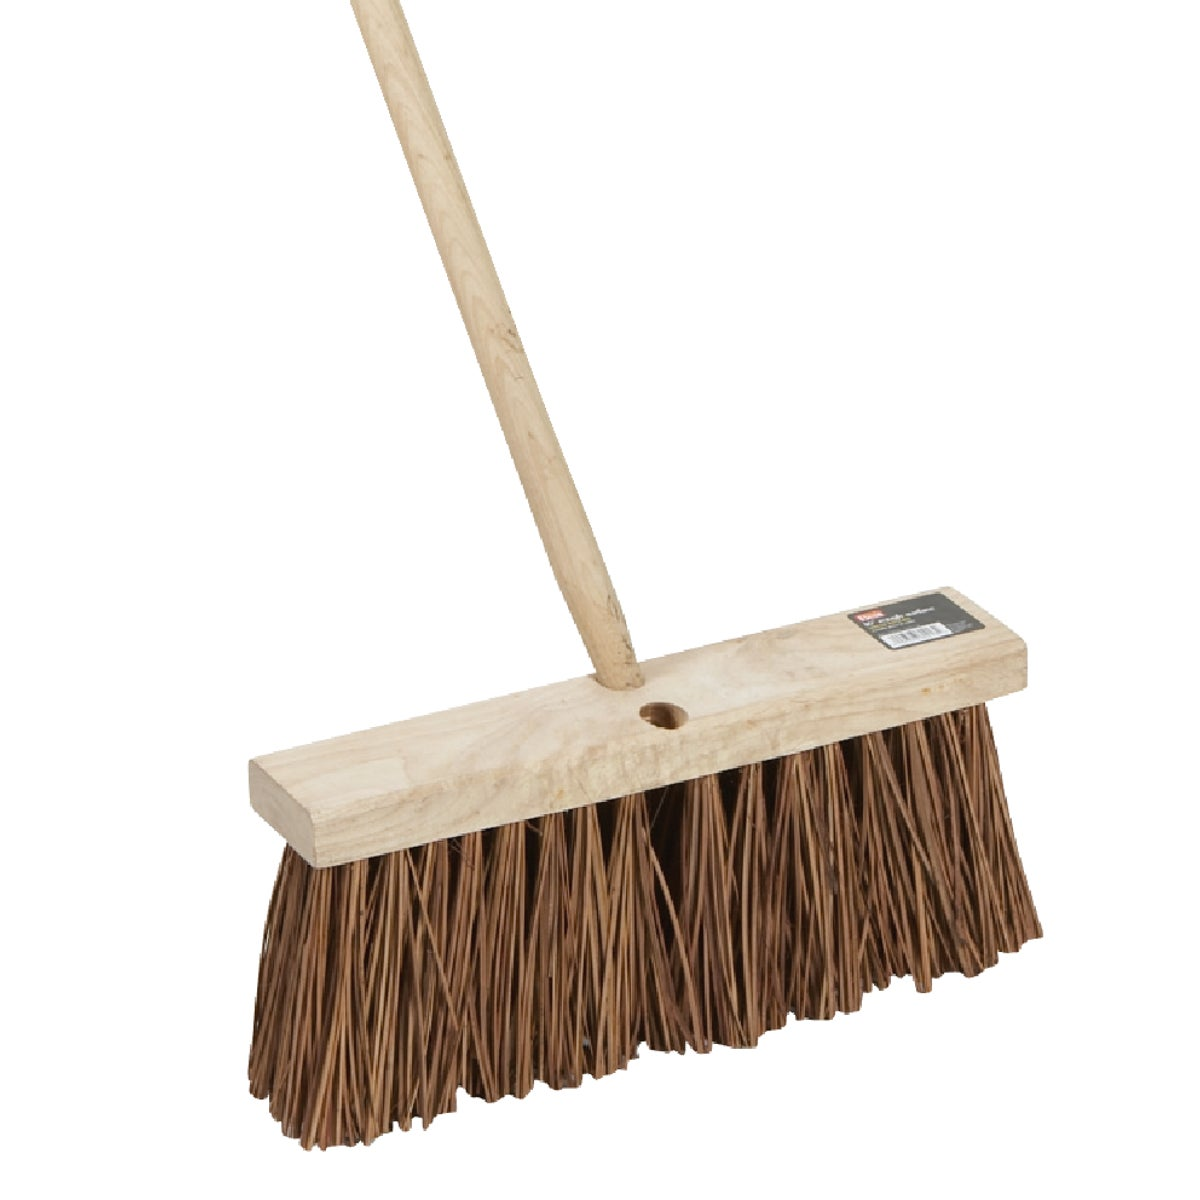 "16"" PALMYRA PUSH BROOM - DI89275 by D Q B Ind"